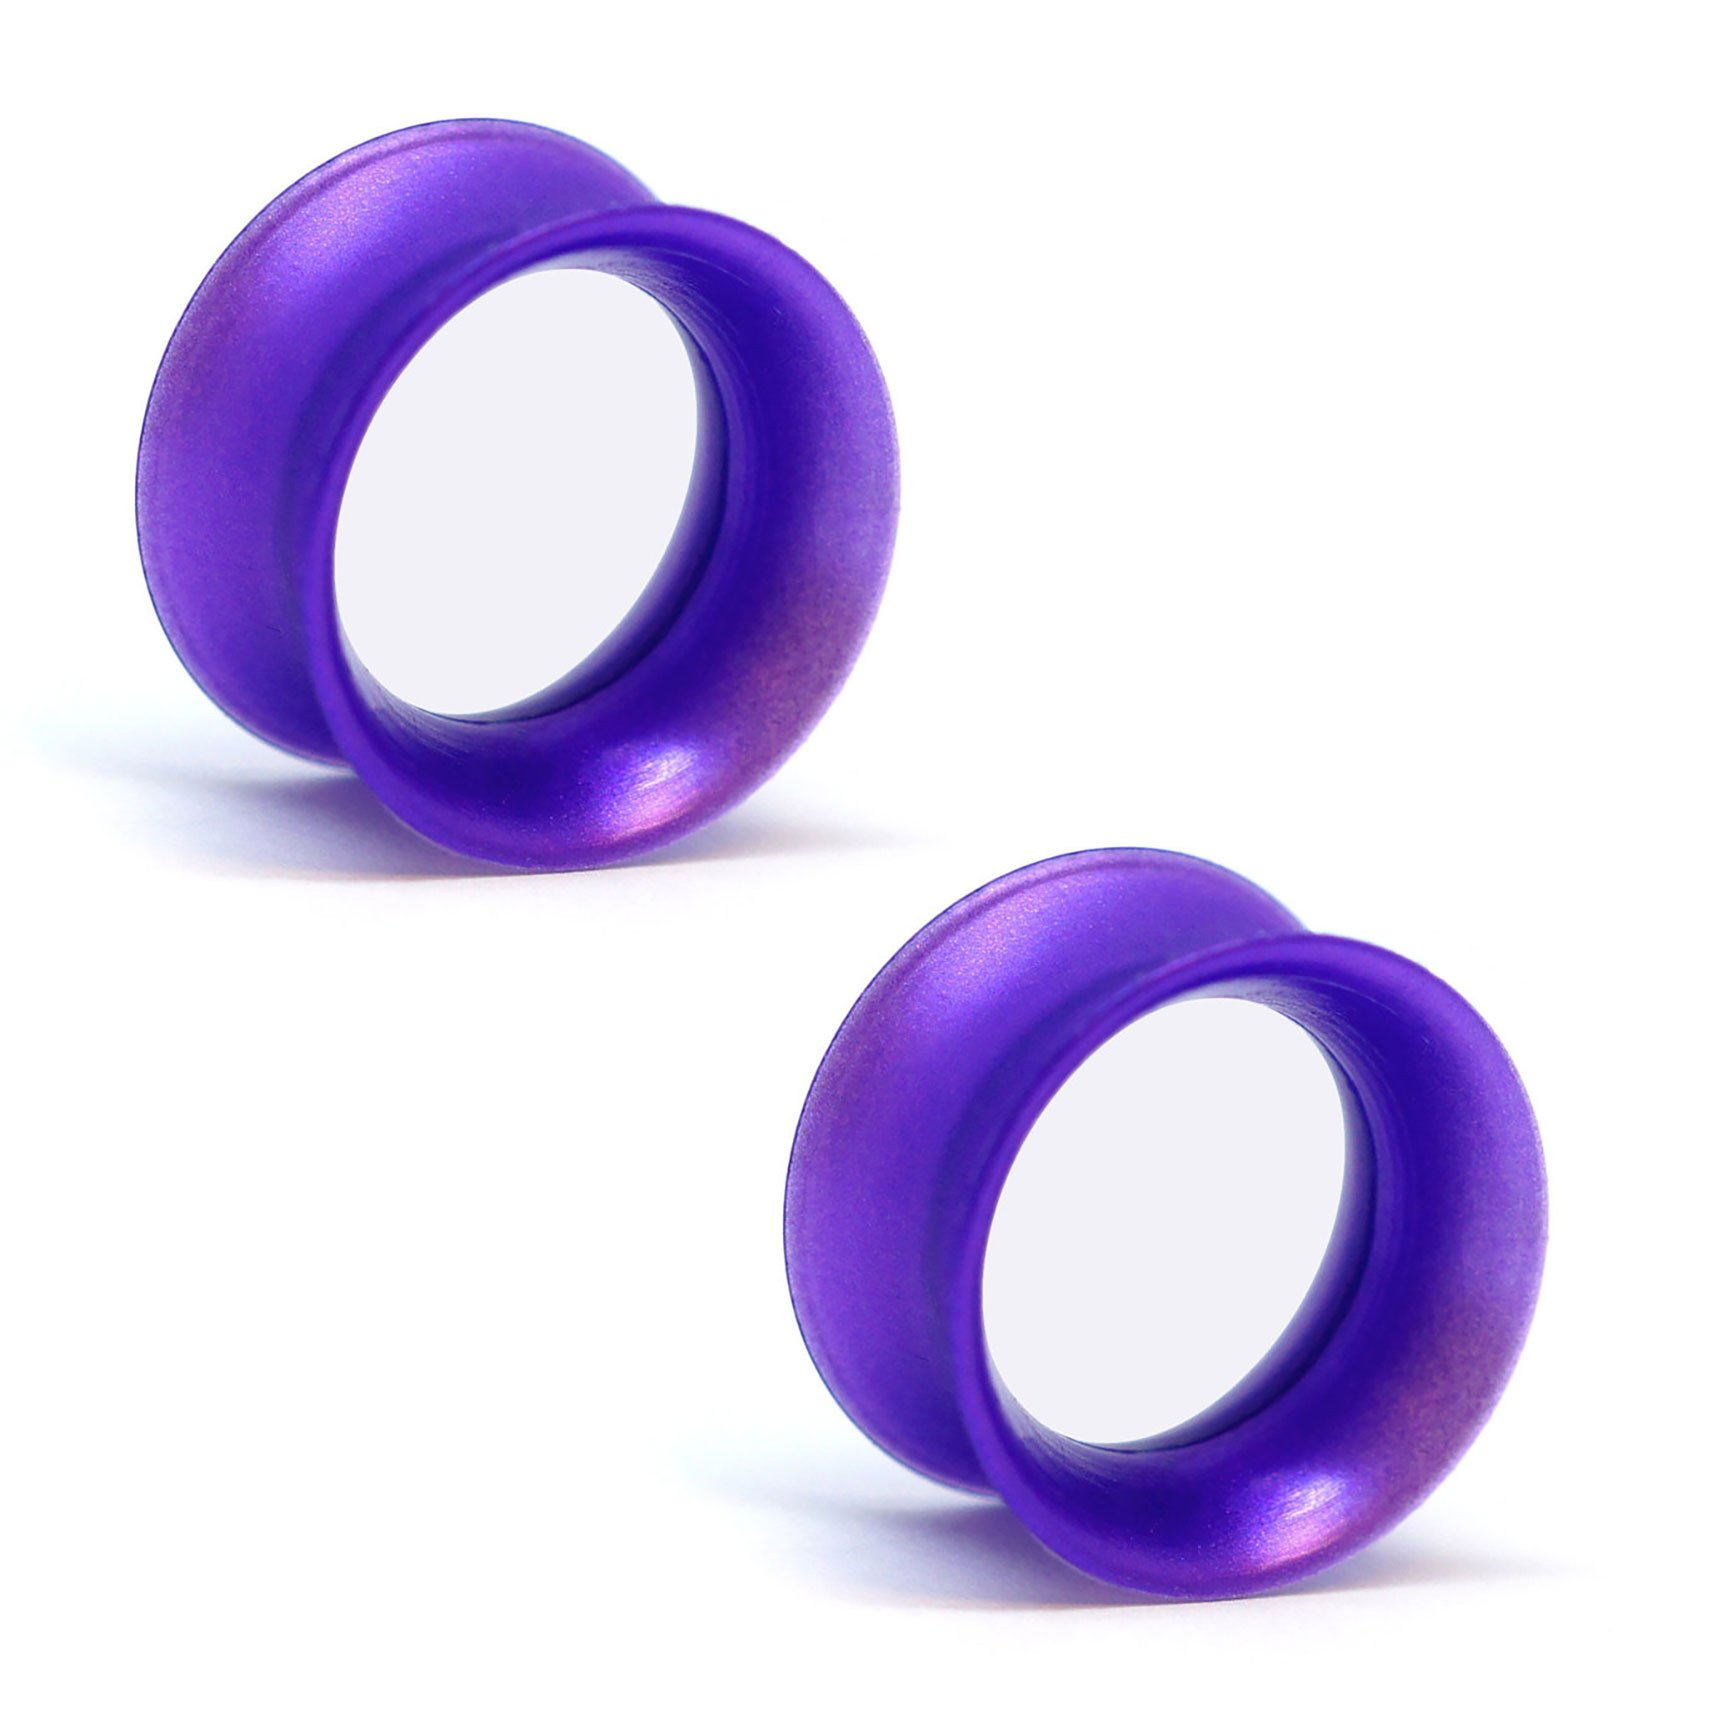 Pair of Silicone Double Flared Skin Eyelets: 2g, Wearable Length: 5/16'' Royal Purple Pearl